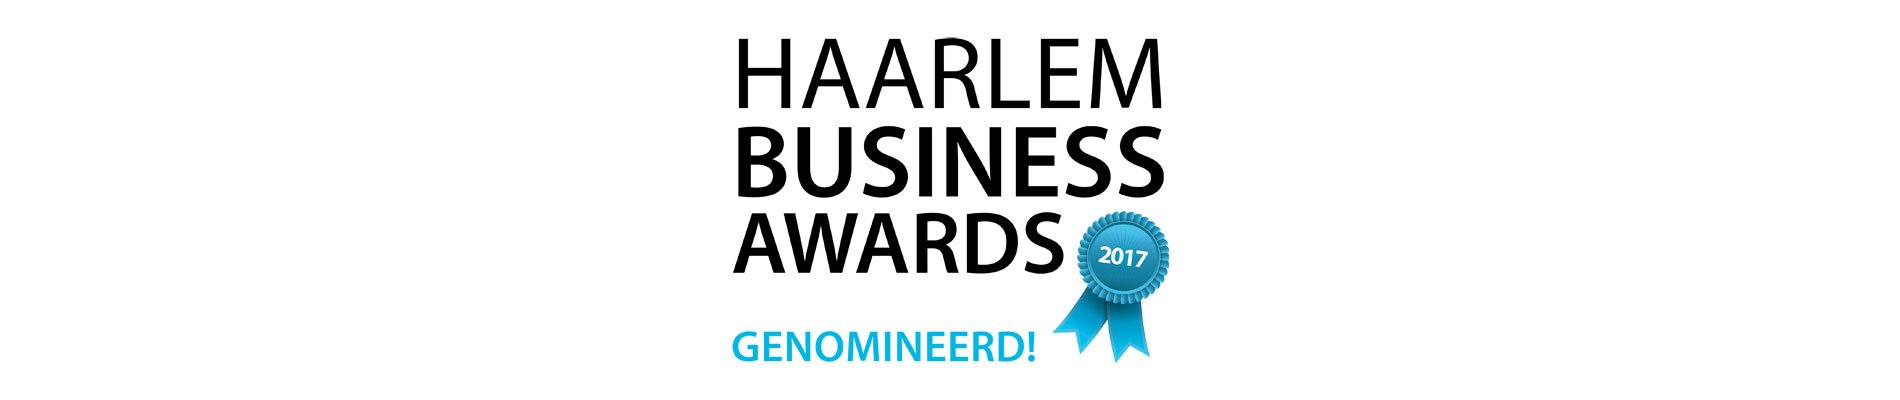 haarlem business awards